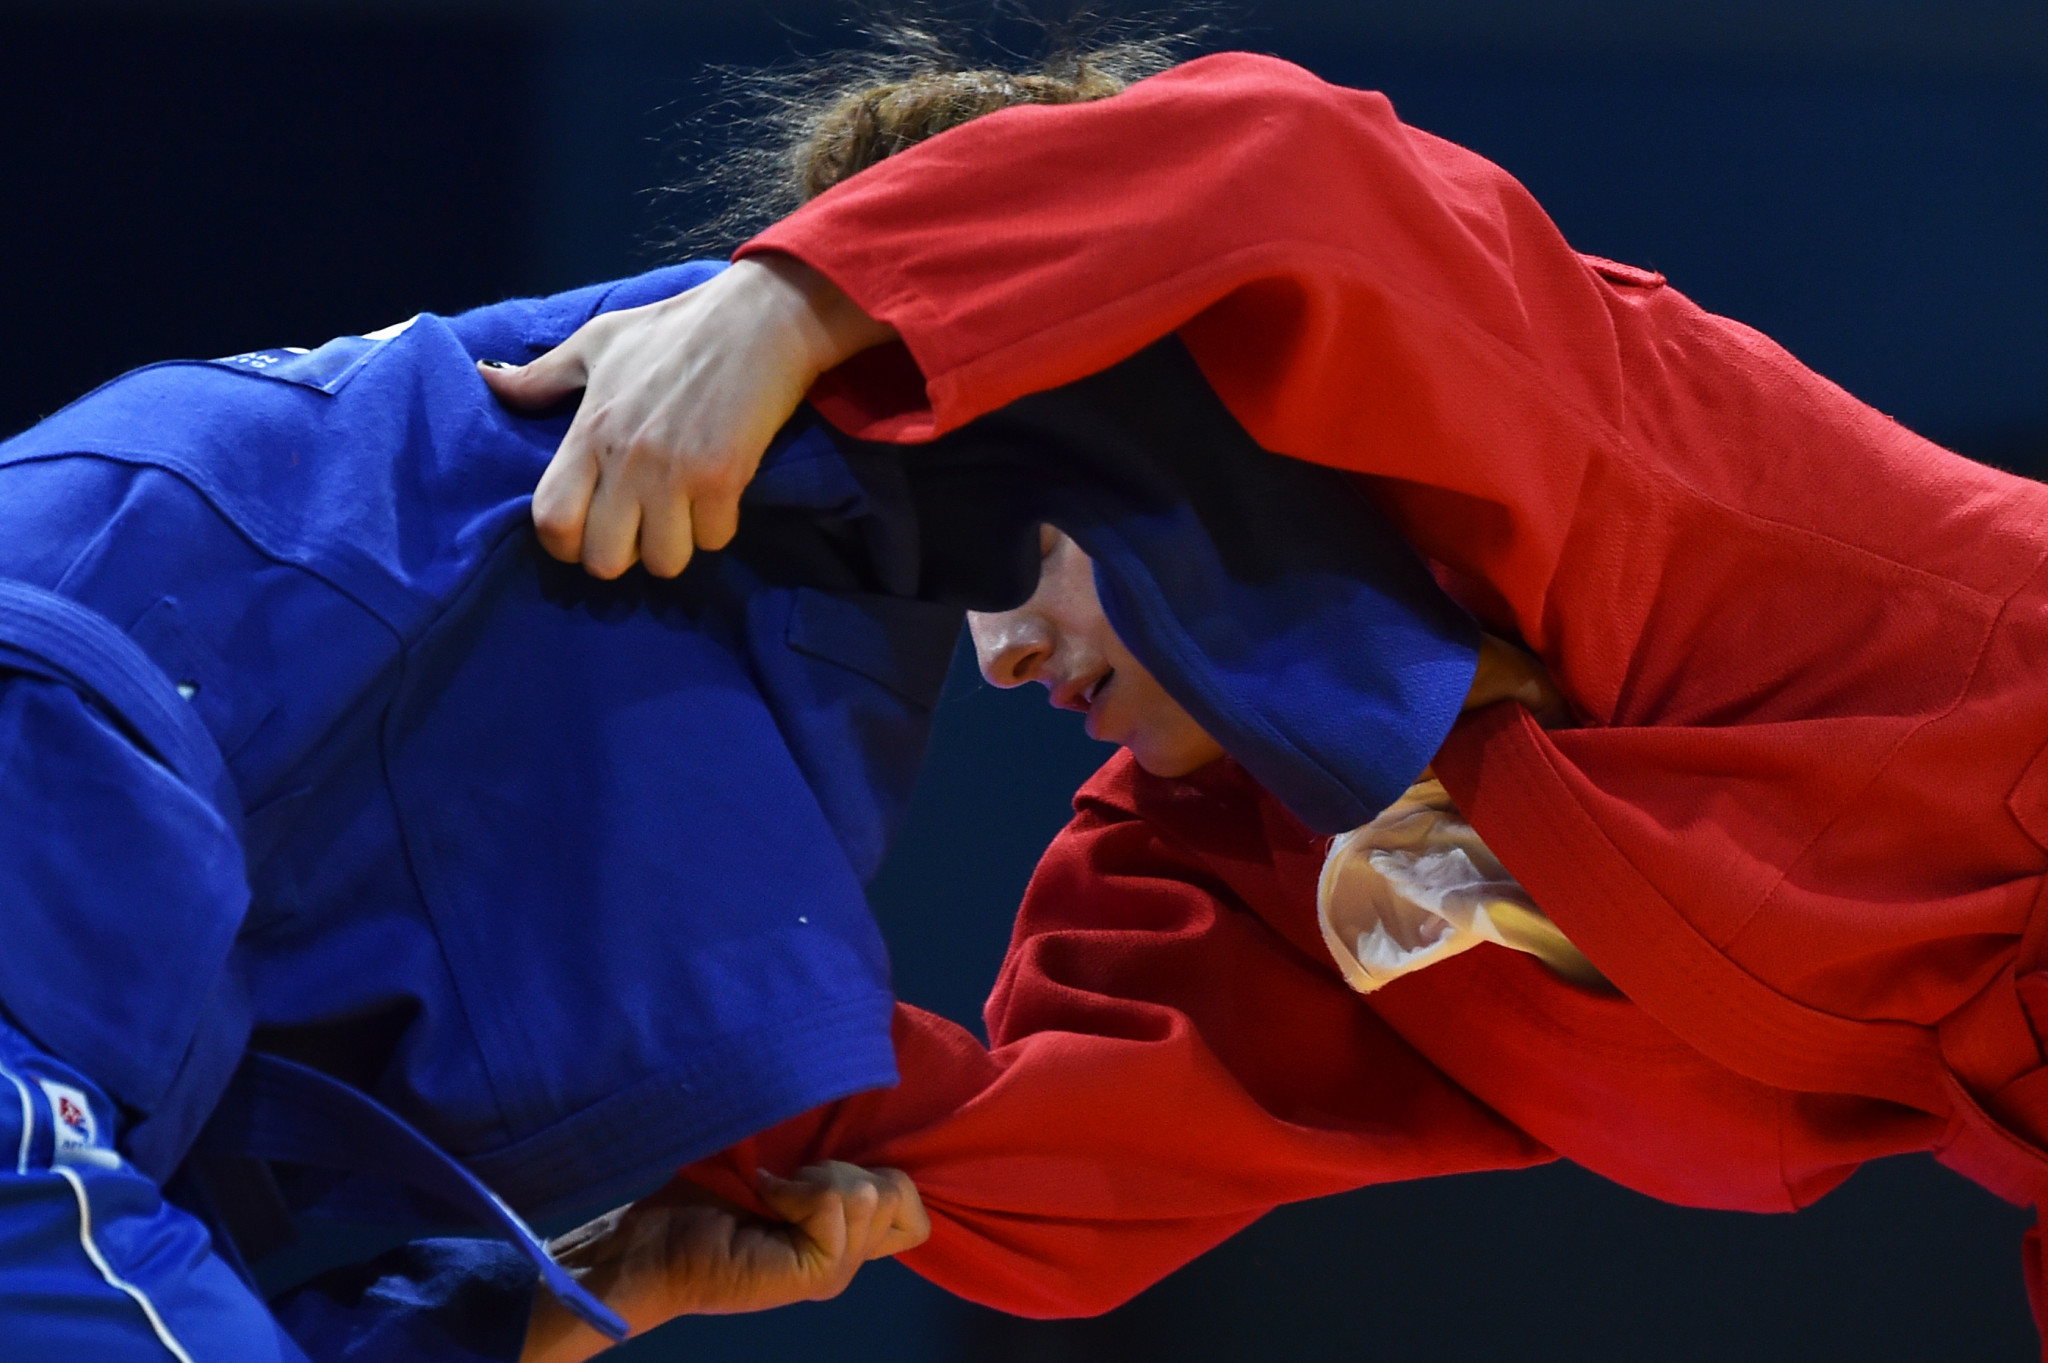 Dutch Sambo Federation hopeful new NOC classification will bring benefits